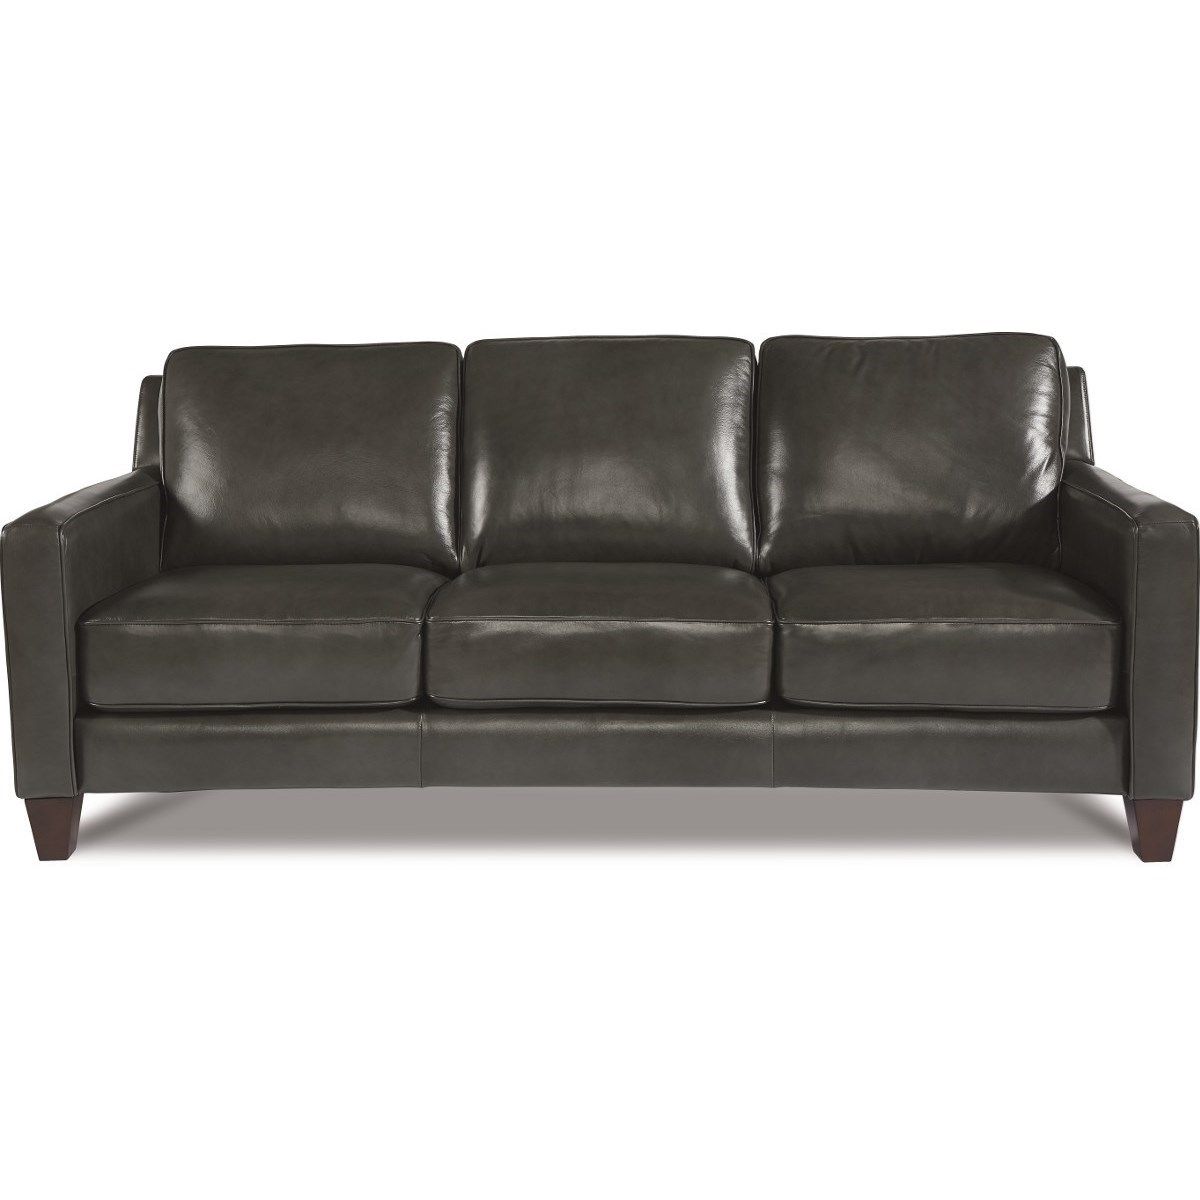 Archer Sofa by La-Z-Boy at Fisher Home Furnishings